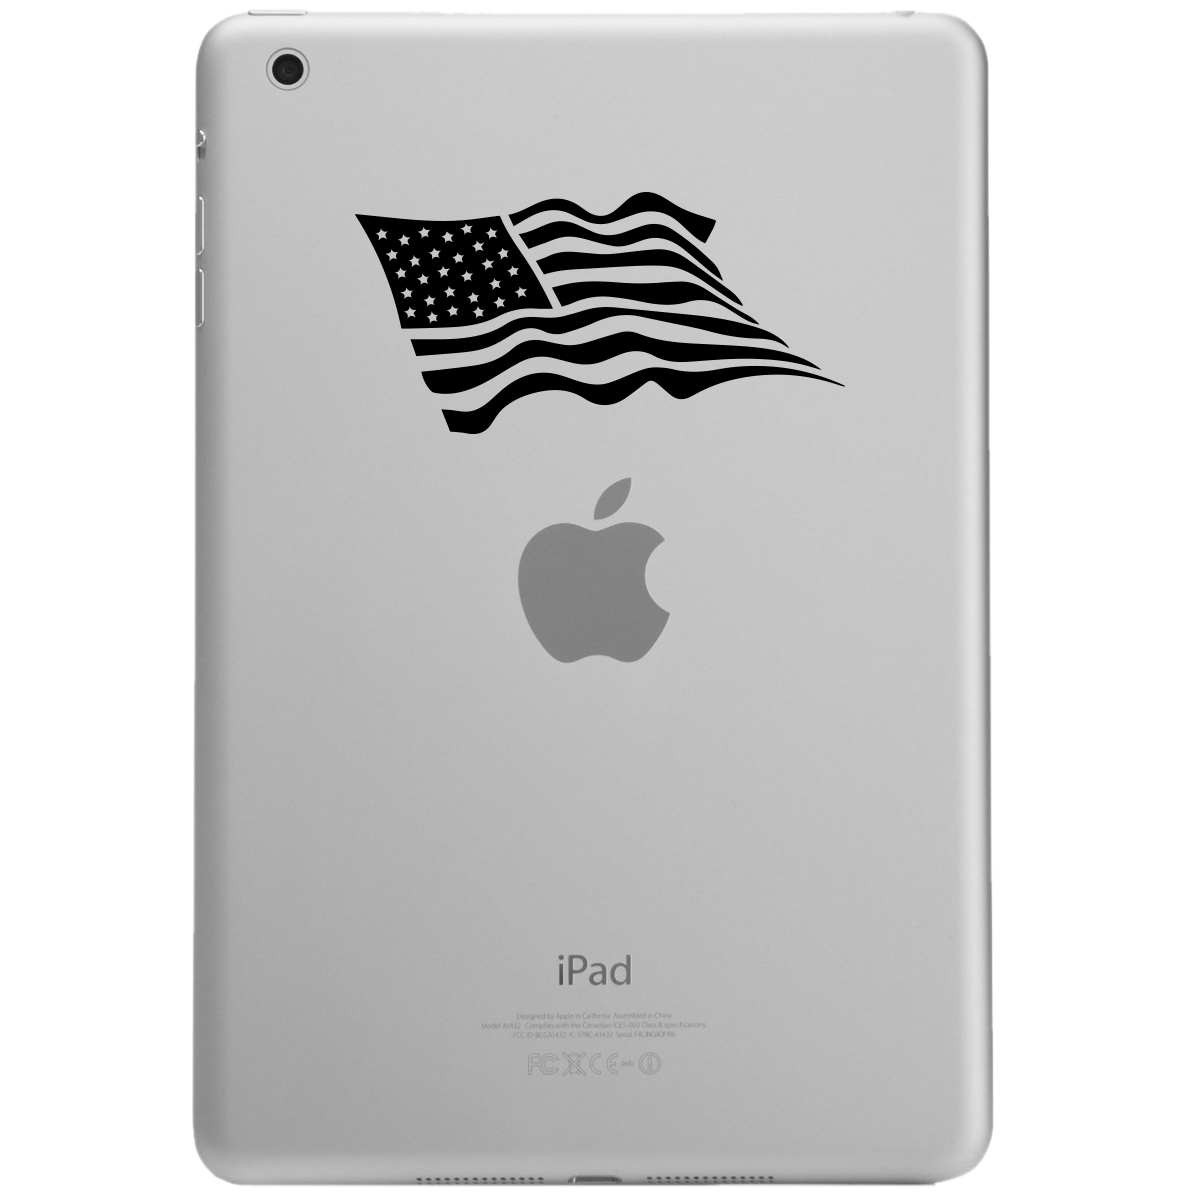 Waving USA Flag Patriotic iPad Tablet Vinyl Sticker Decal